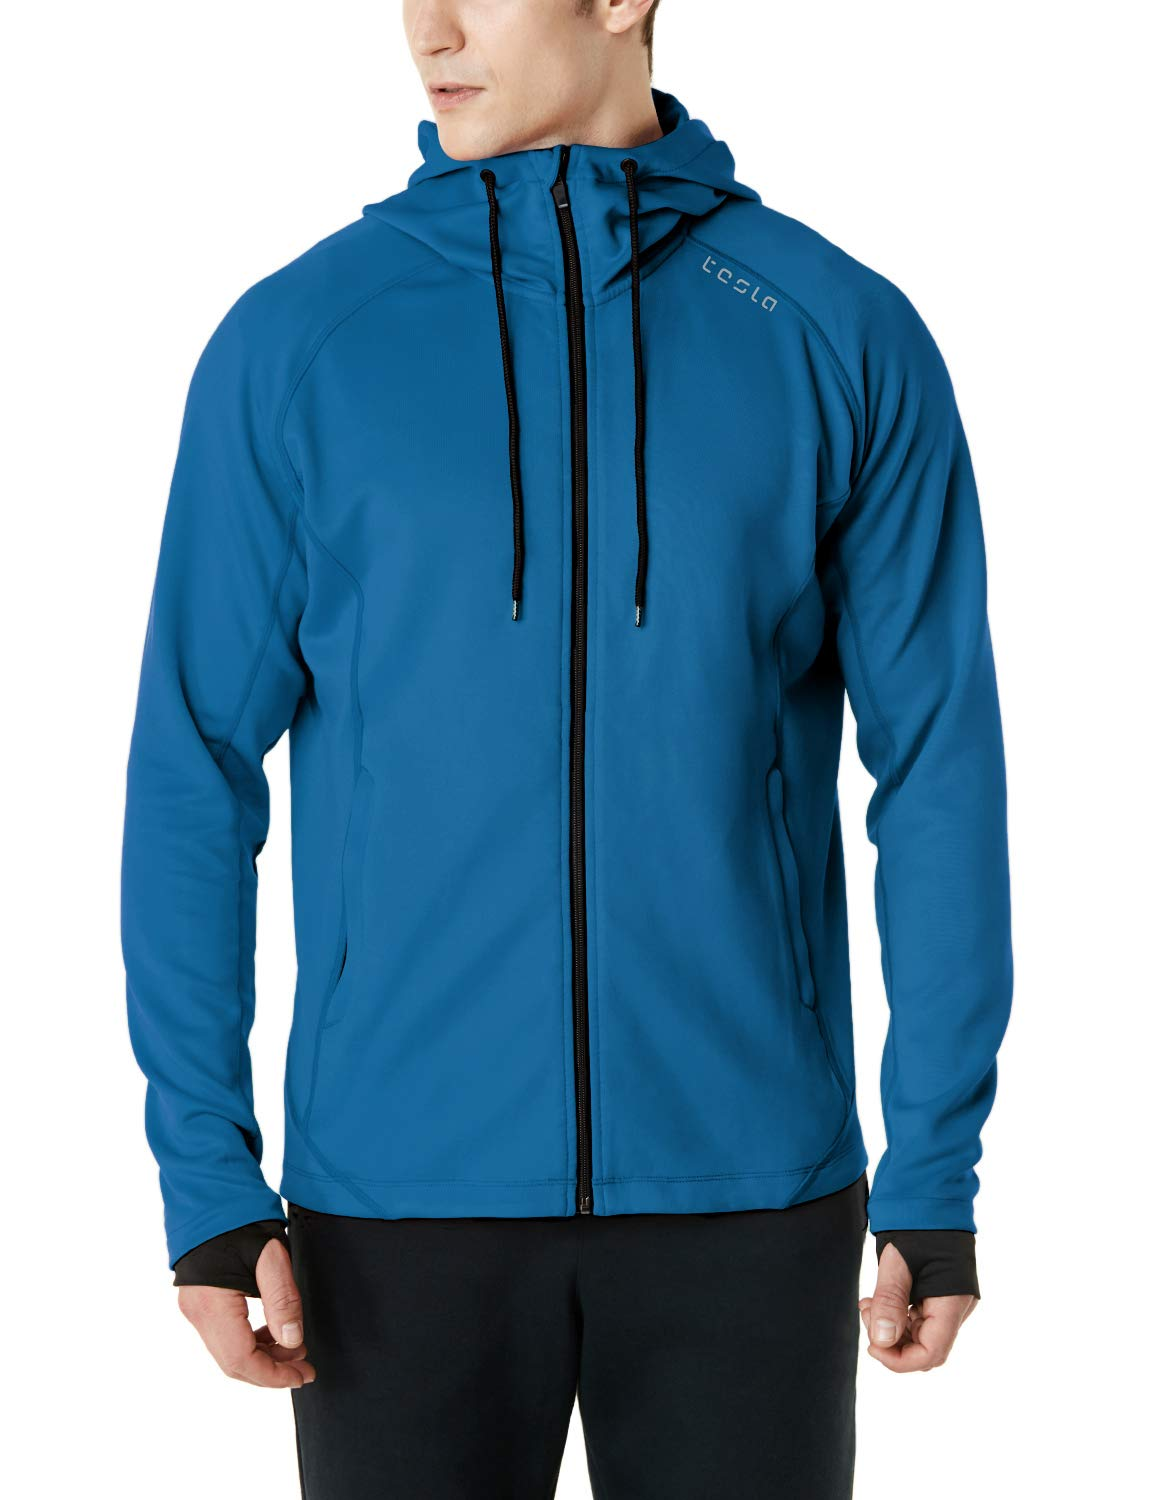 TSLA Men's Performance Active Training Full-Zip Hoodie Jacket, Active Fullzip(mkj03) - Deep Blue, XX-Large by TSLA